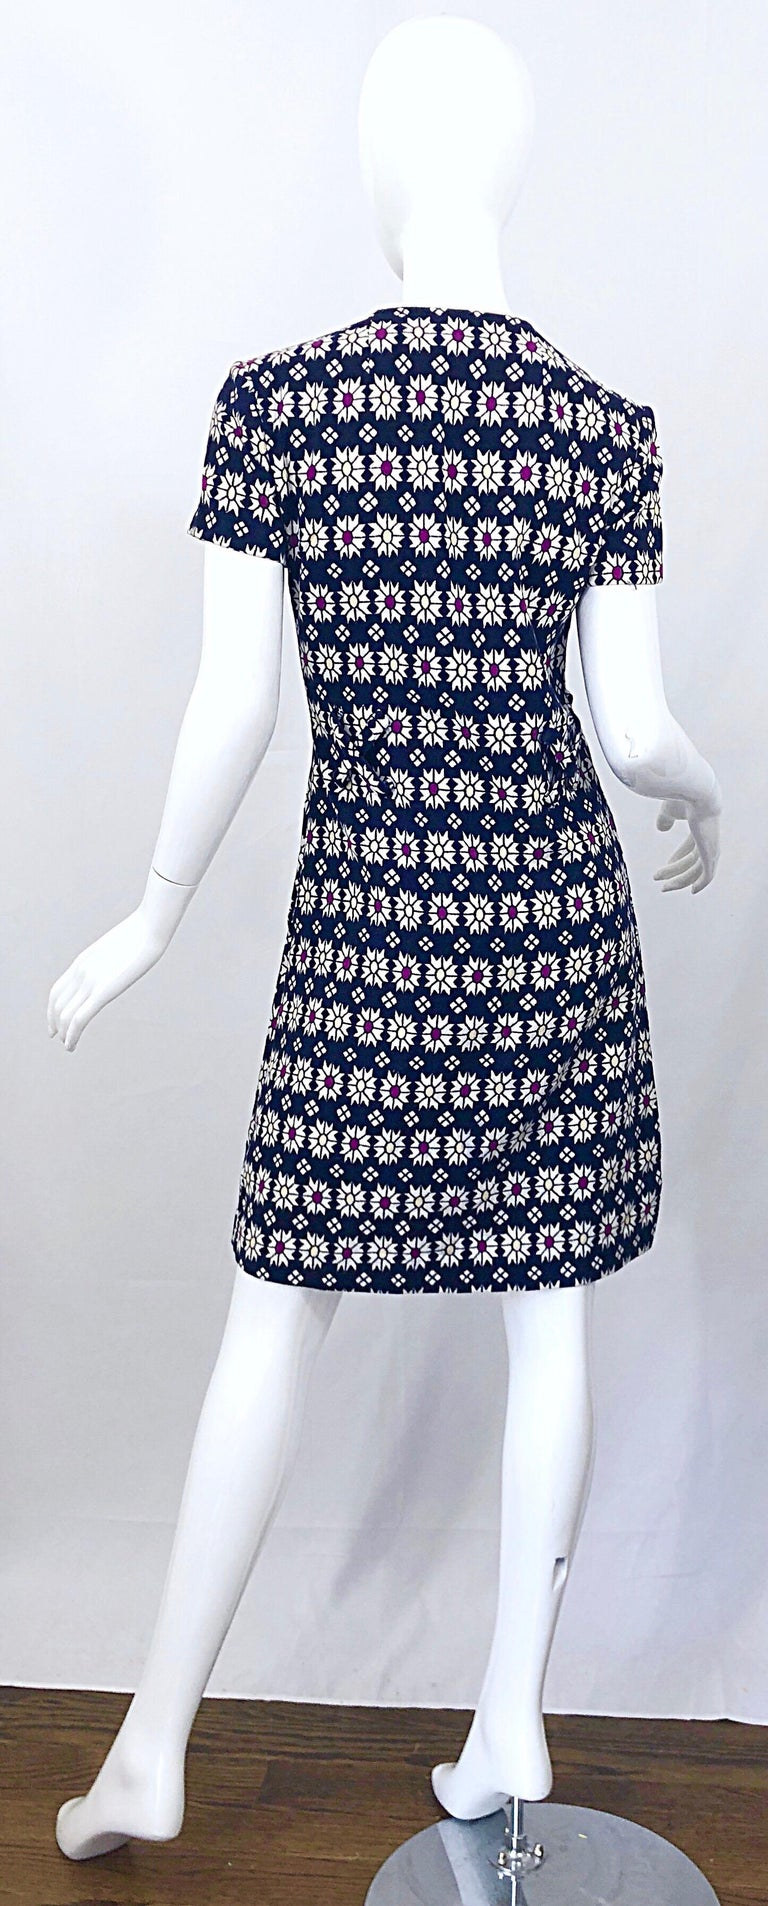 Chic 1960s Navy Blue + Fuchsia + Yellow Geometric Daisy Print 60s A Line Dress In Excellent Condition For Sale In Chicago, IL